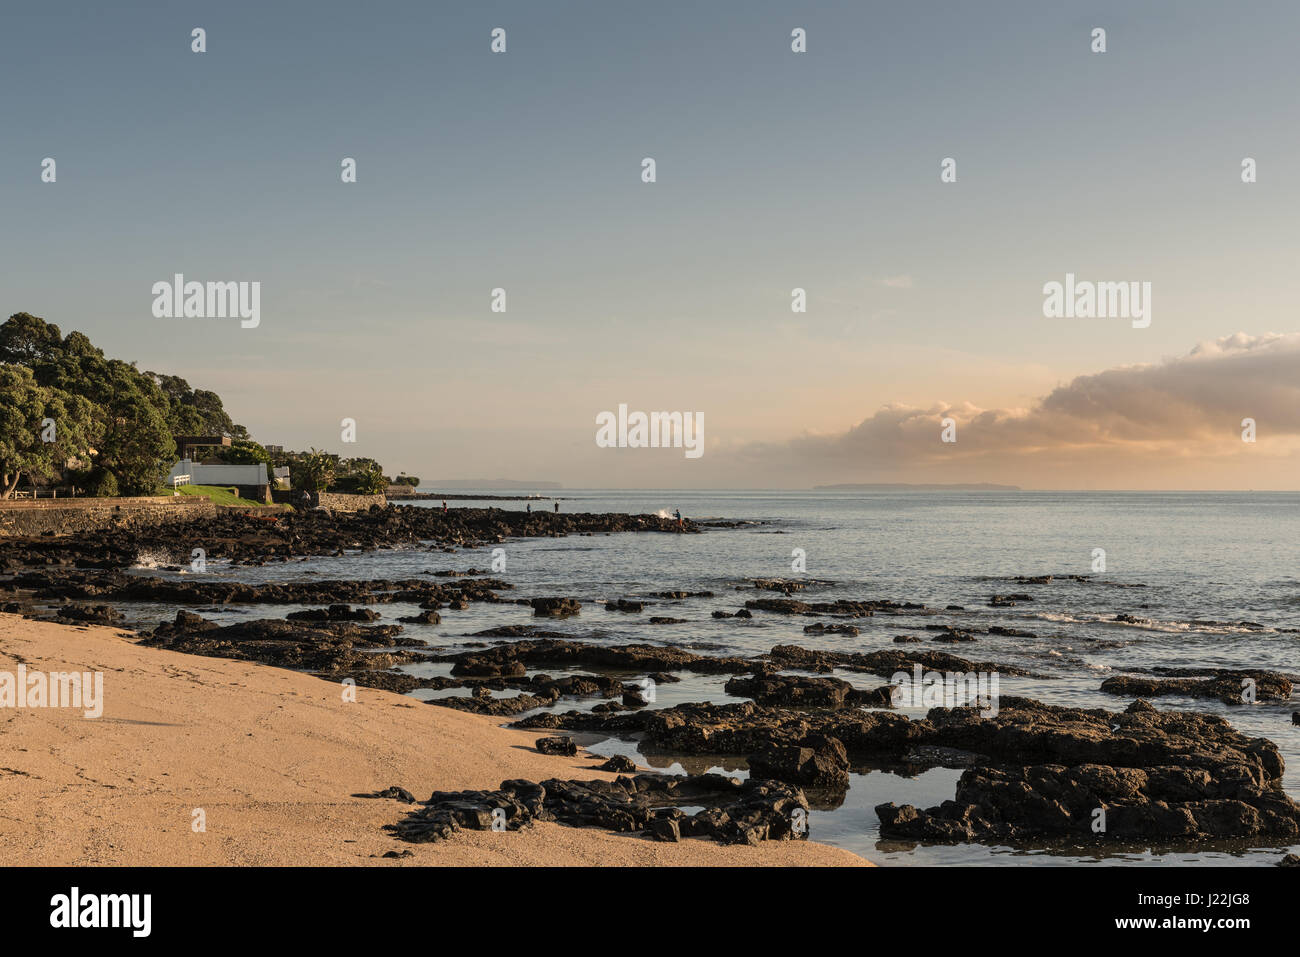 Auckland, New Zealand - March 2, 2017: Black volcanic north shore of Tapapuna Beach shows upcoming storm clouds - Stock Image